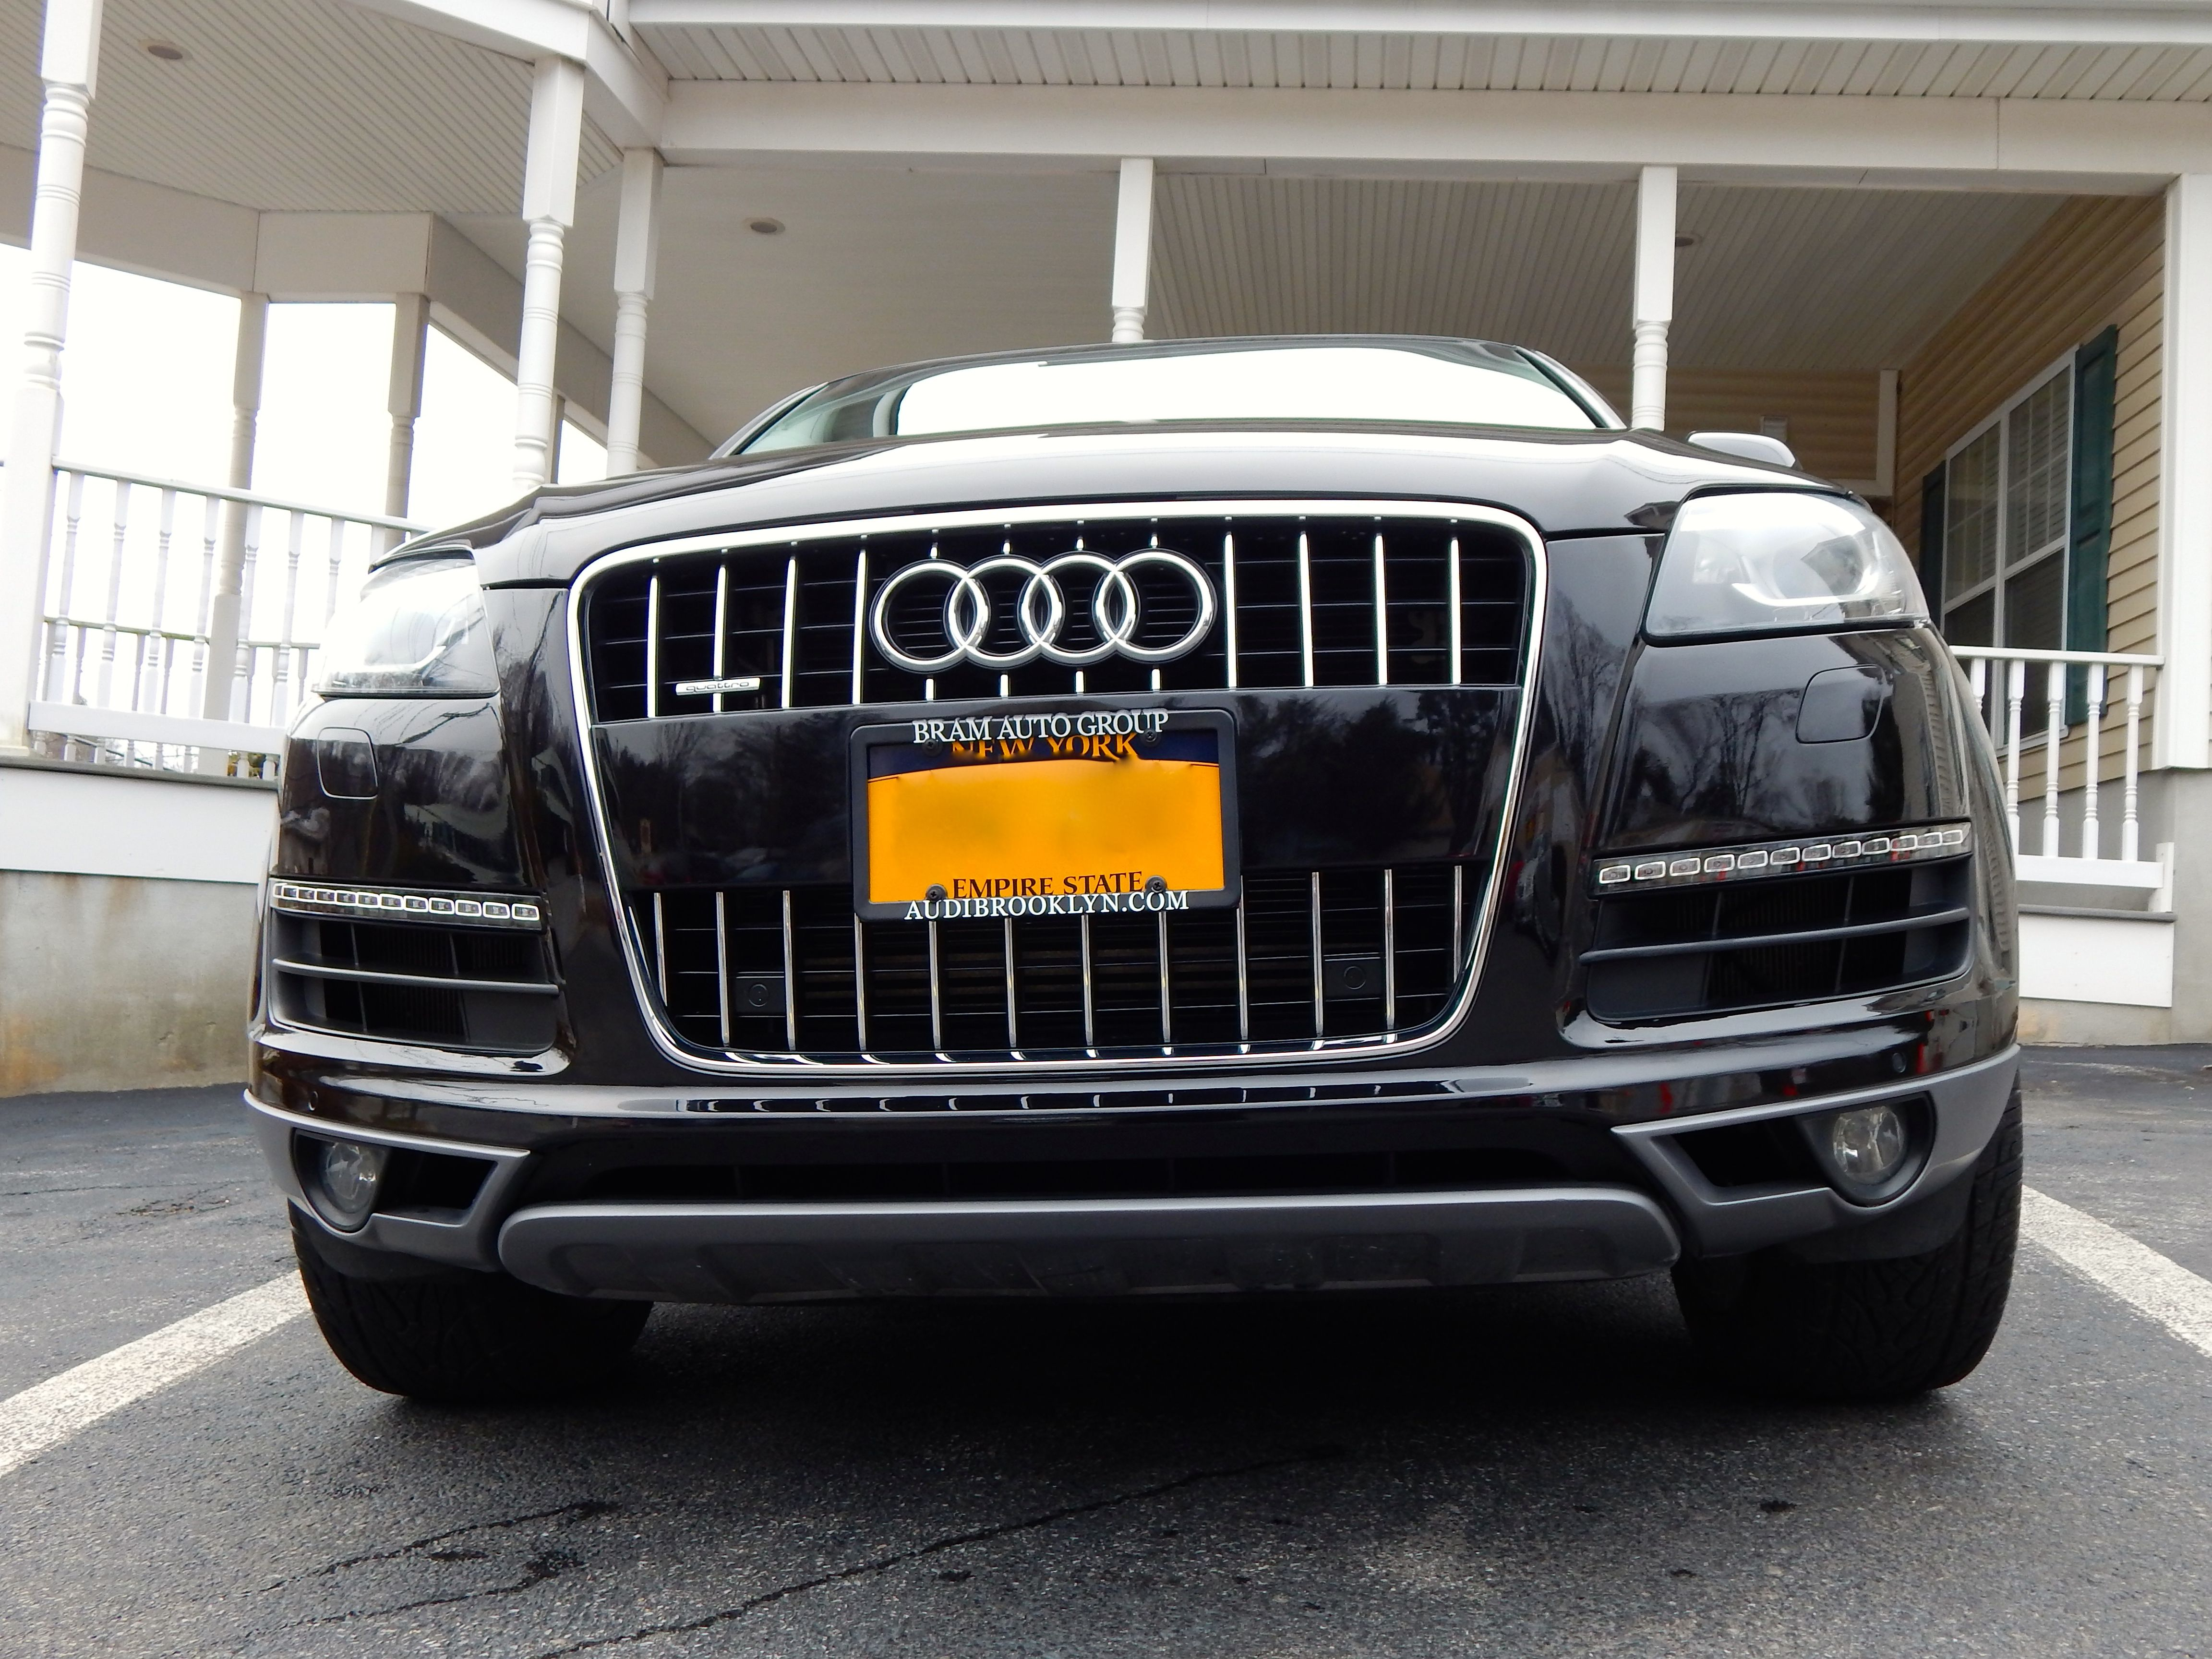 name ve version forums image forum finally westchester got i size attachment larger audi views for img q the general look click ive